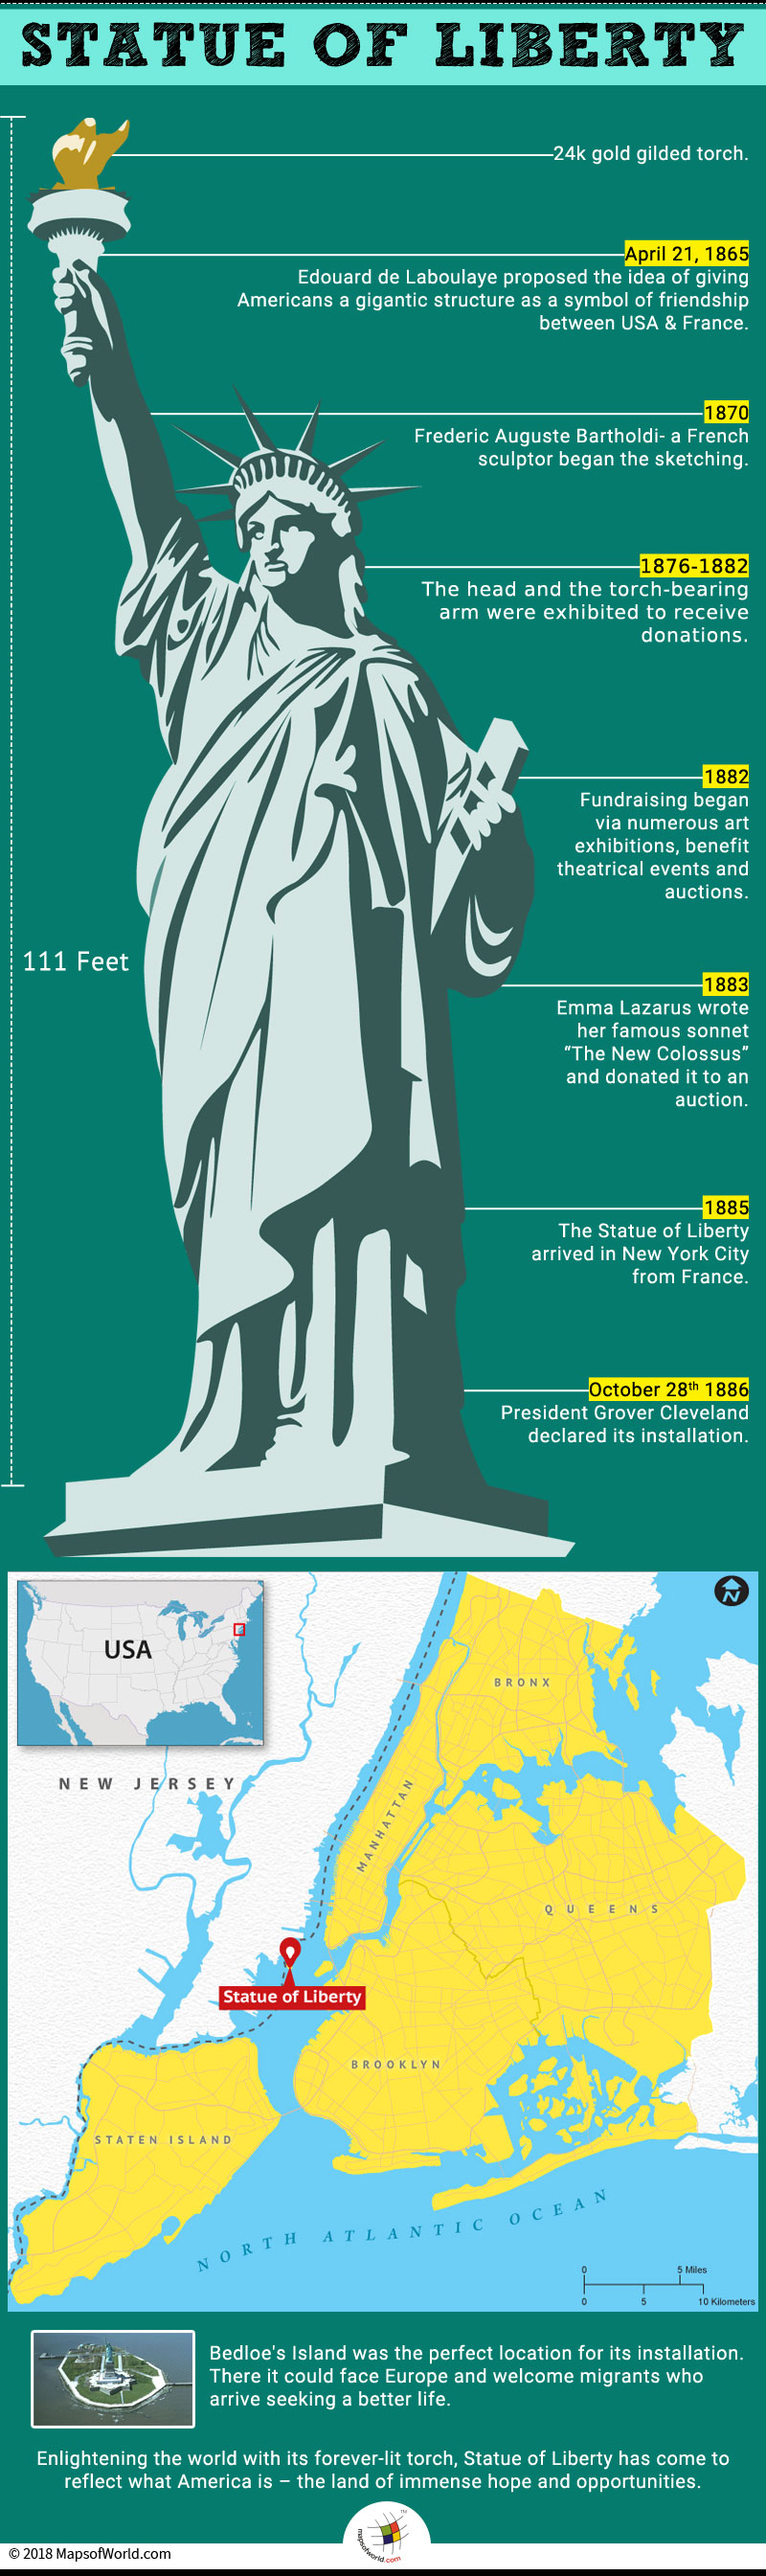 Infographic elaborating the construction of Statue of Liberty